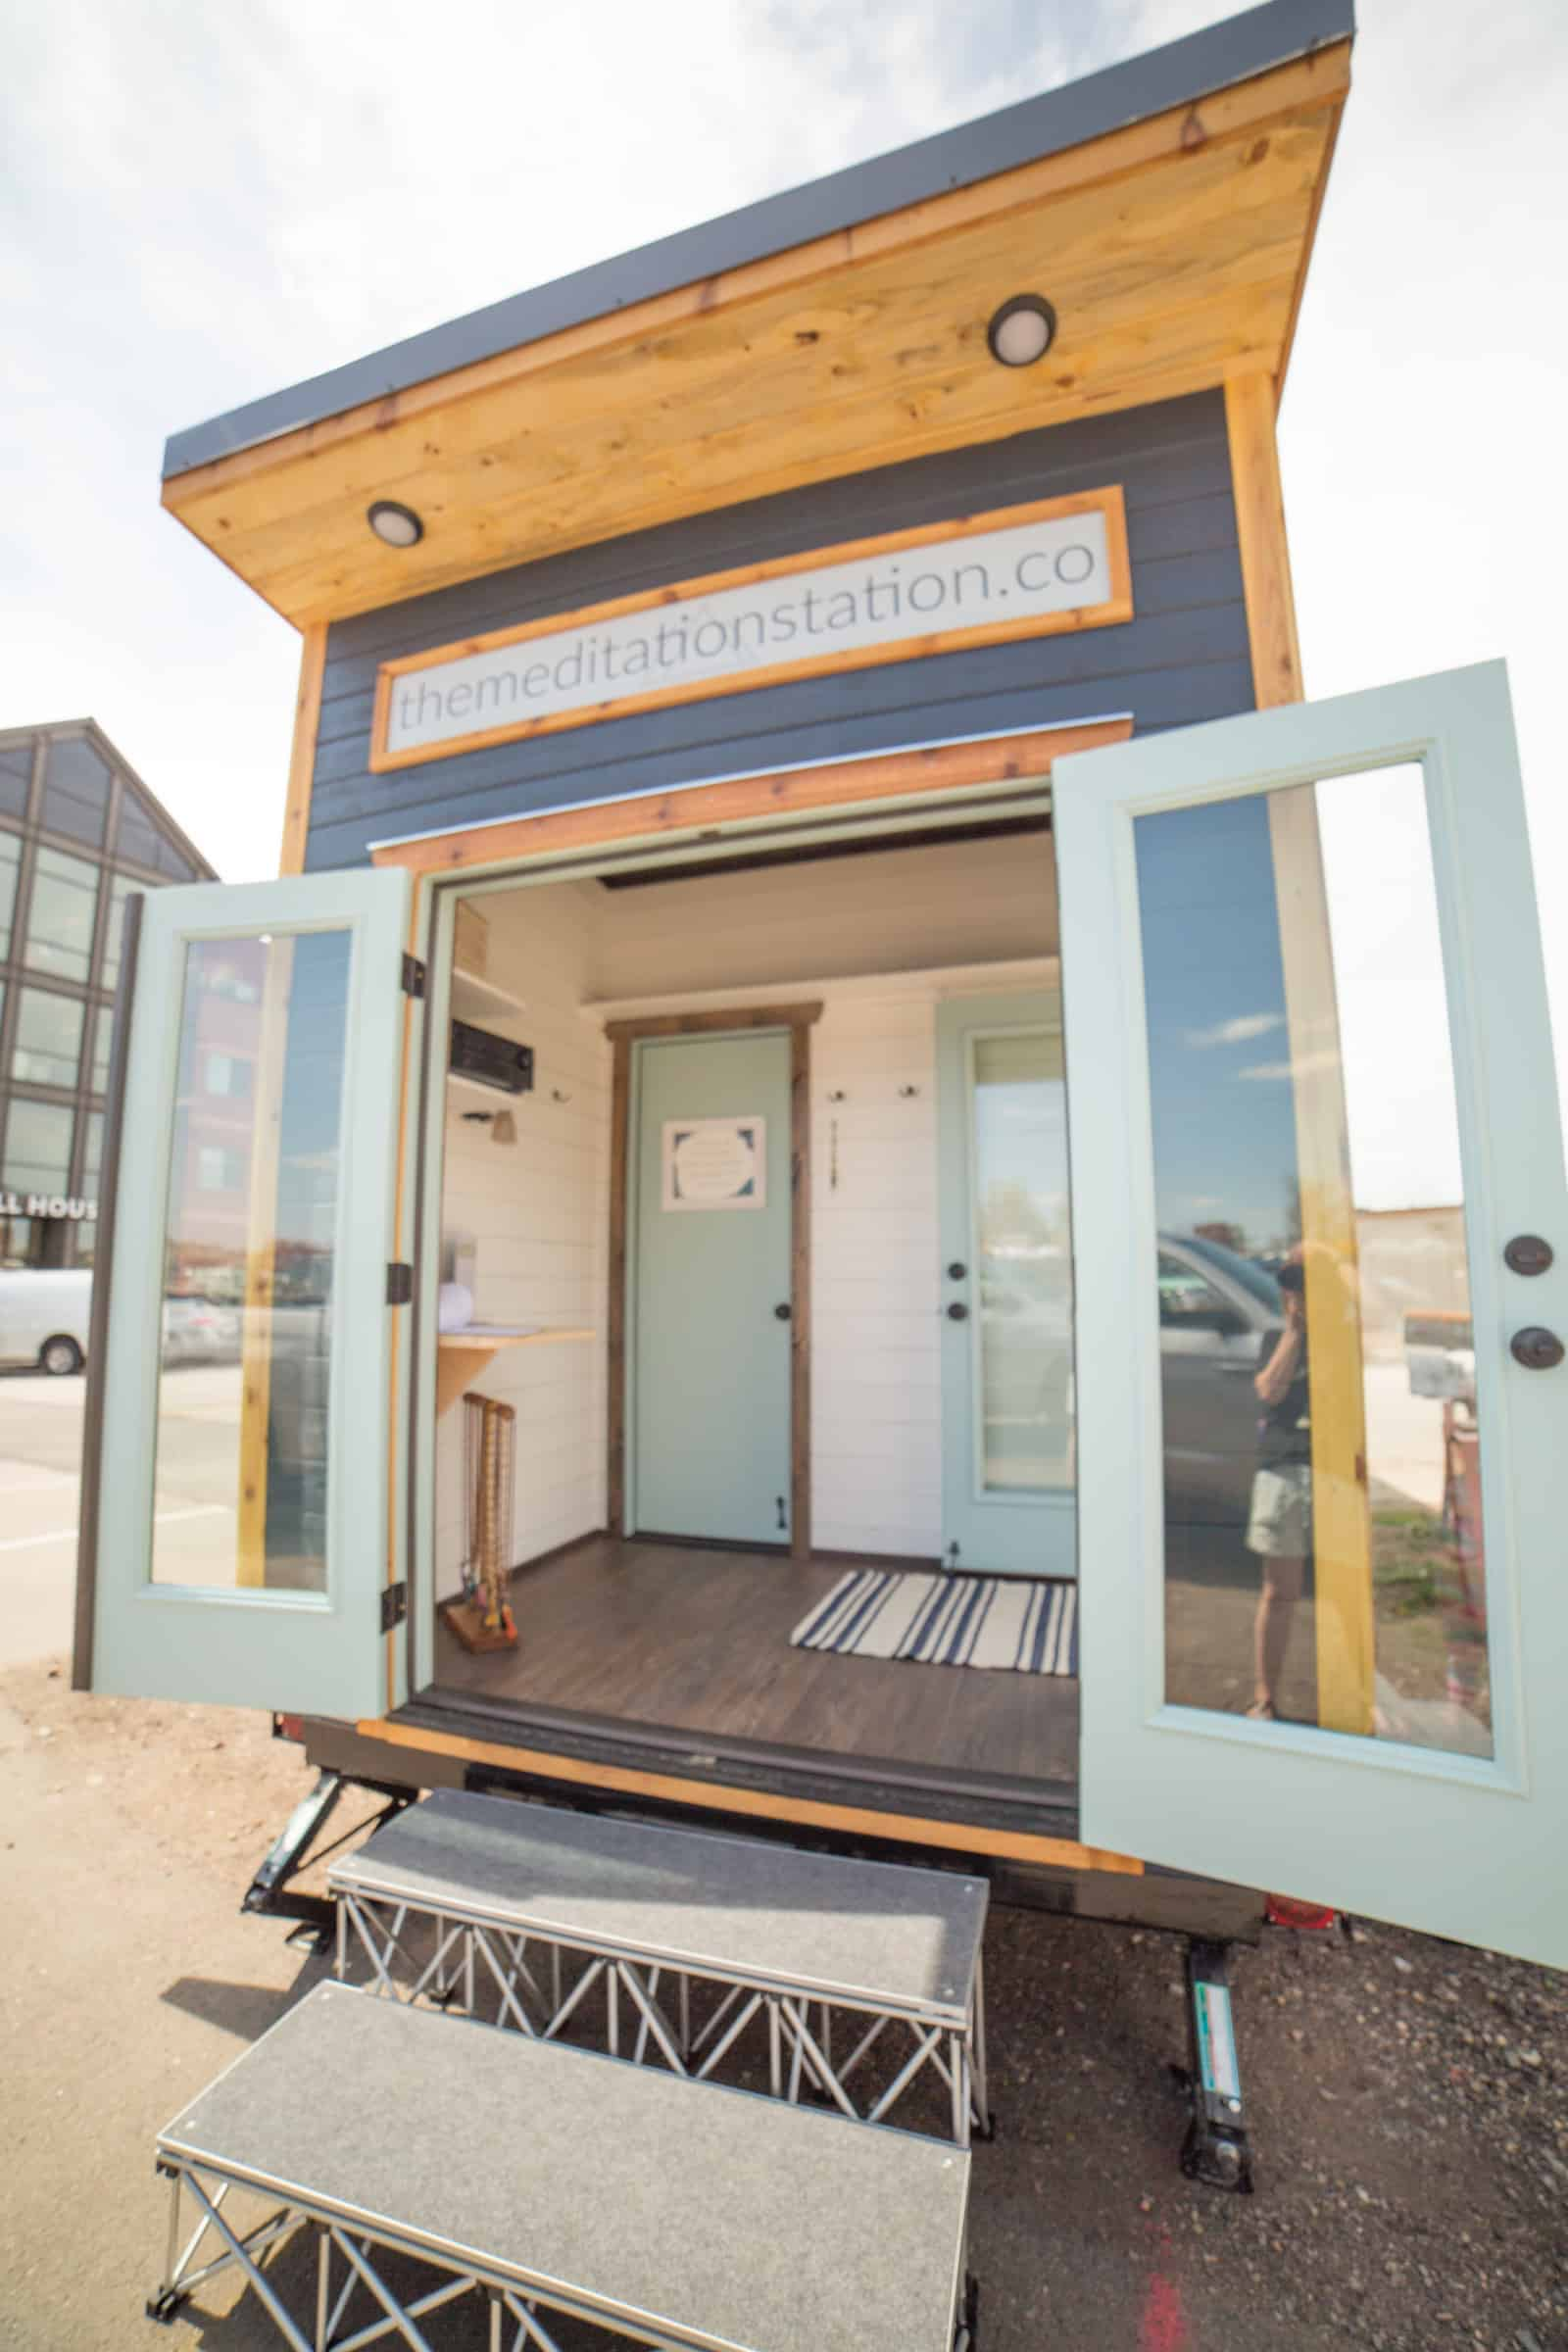 The Meditation Station is a non-affiliated mobile meditation studio in Fort Collins, CO (view our write-up in the Coloradoan) that provides the local companies, community and schools with meditation and mindfulness experiences that are sure to leave you with improved overall well-being and sense of inner peace. Our mission is to bring the benefits of meditation and mindfulness into the Fort Collins and Northern CO community, workplaces and schools without any associated religion, spirituality or philosophy. We want to create a safe place for people to relax and de-stress in to help bring times of calm to the chaos that can at times fill our lives. Deep breaths FoCo!